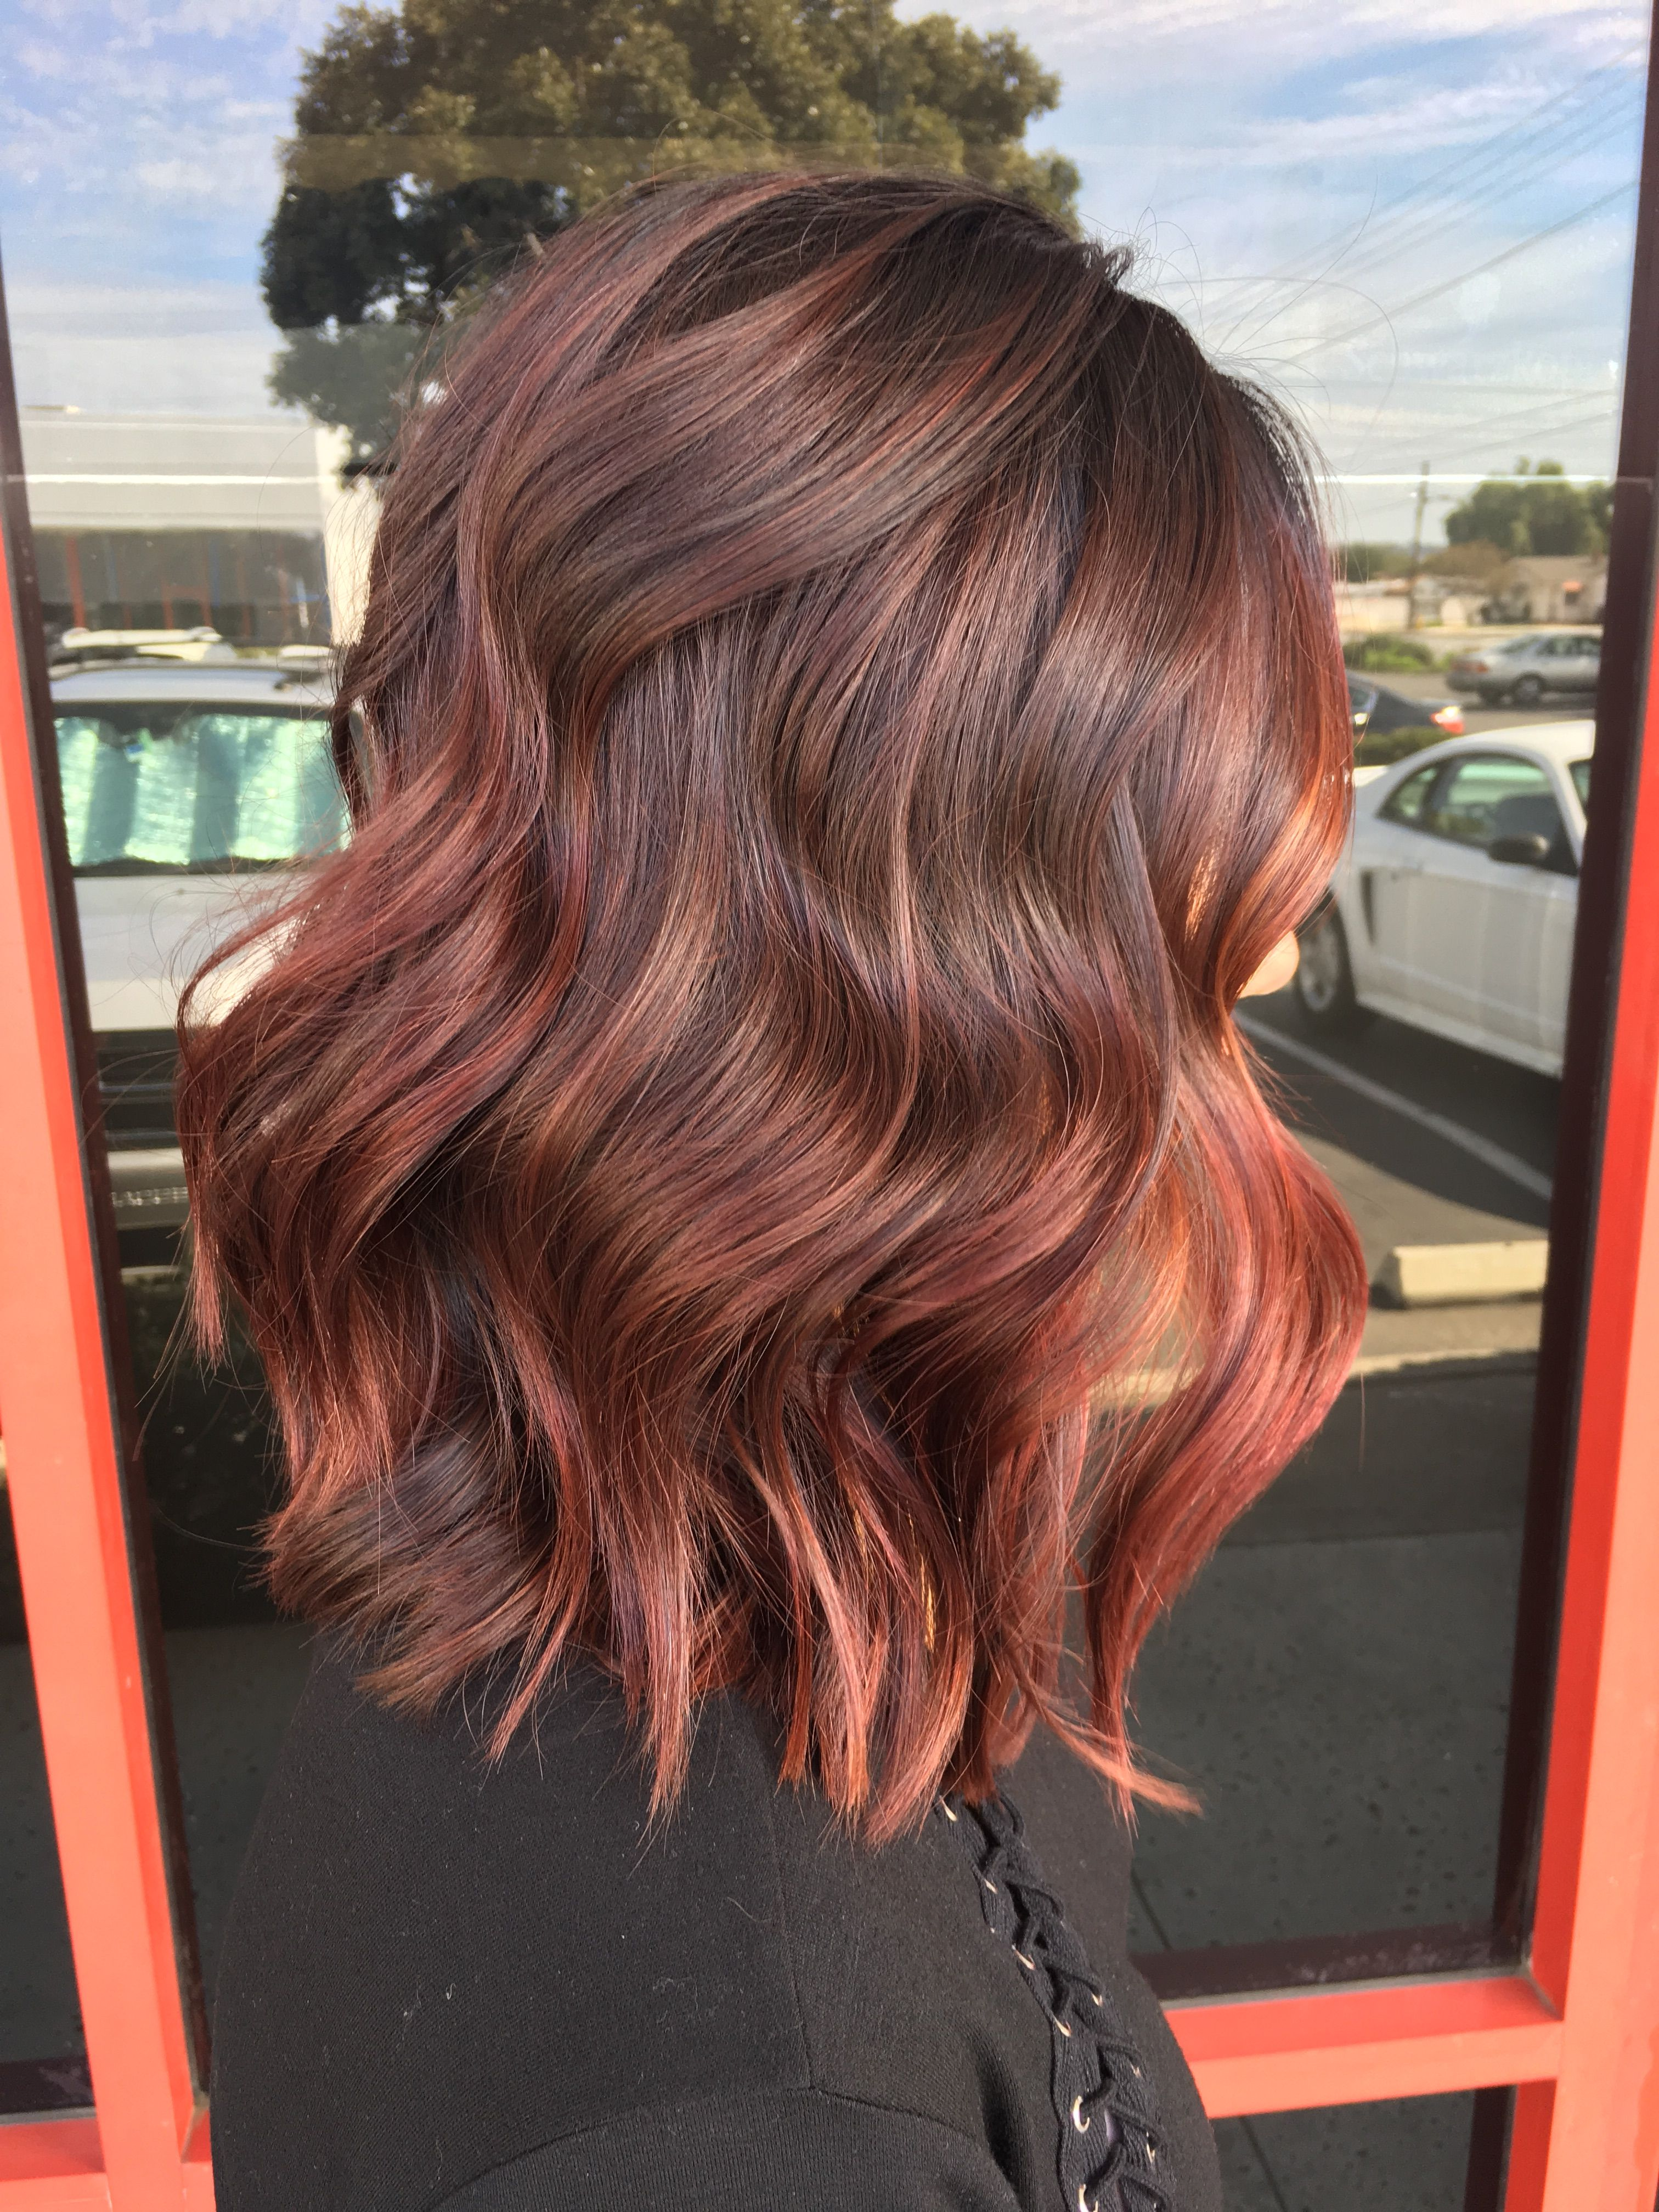 Red Balayage Hair Red Hair Hairpainting Short Haircut Lob Dark Red Haired Burgundy Hair Mahogany Hai Red Balayage Hair Balayage Hair Short Hair Balayage